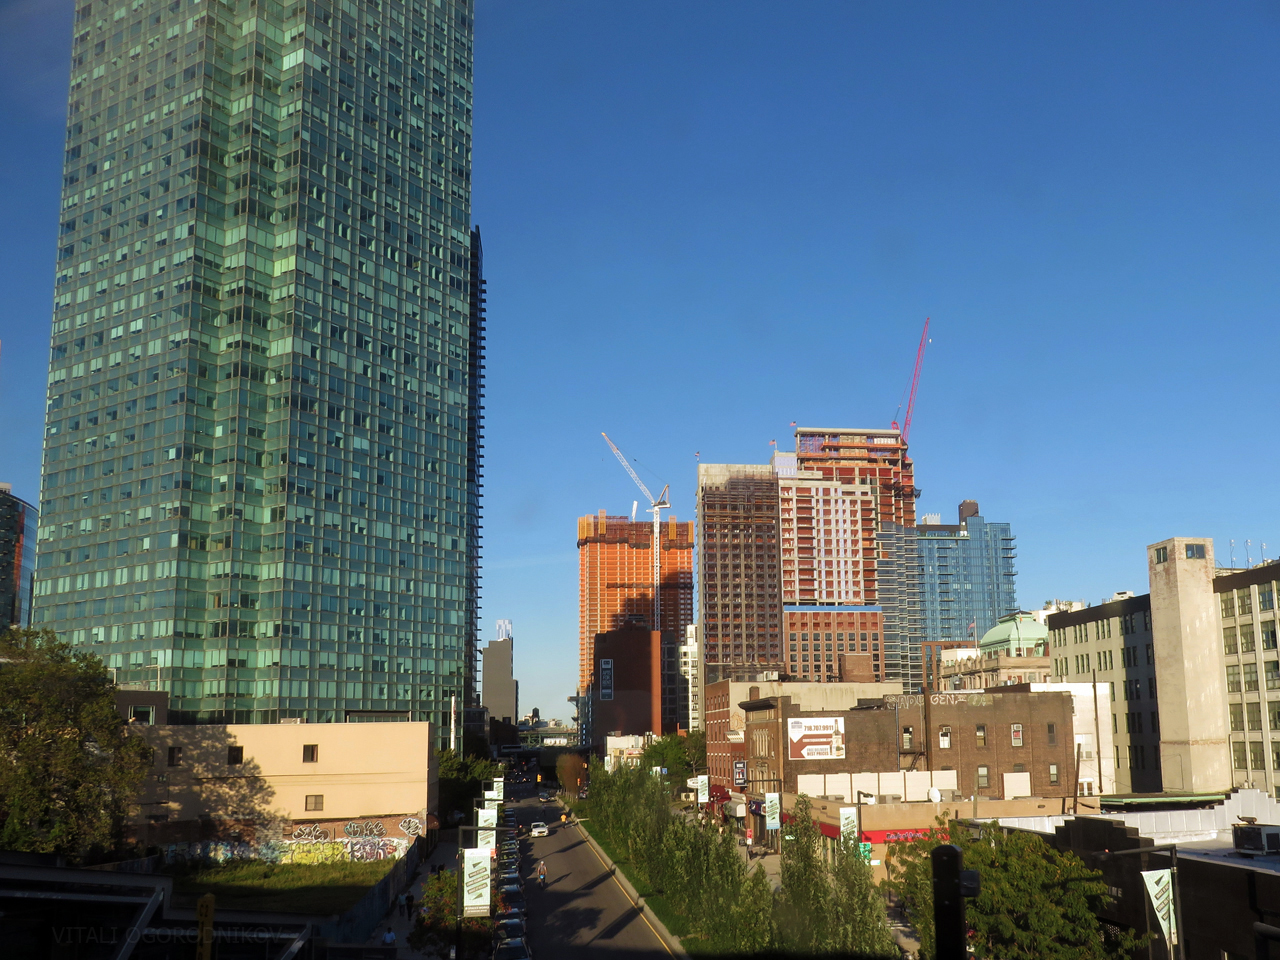 Under-construction buildings, from left to right: The Hayden (behind One Court Square), Aloft Hotel (background, center left), 28-10 Jackson Avenue, Watermark Court Square, The Harrison, and 44-26 Purves Street. The recently-completed Halo LIC is on the right.